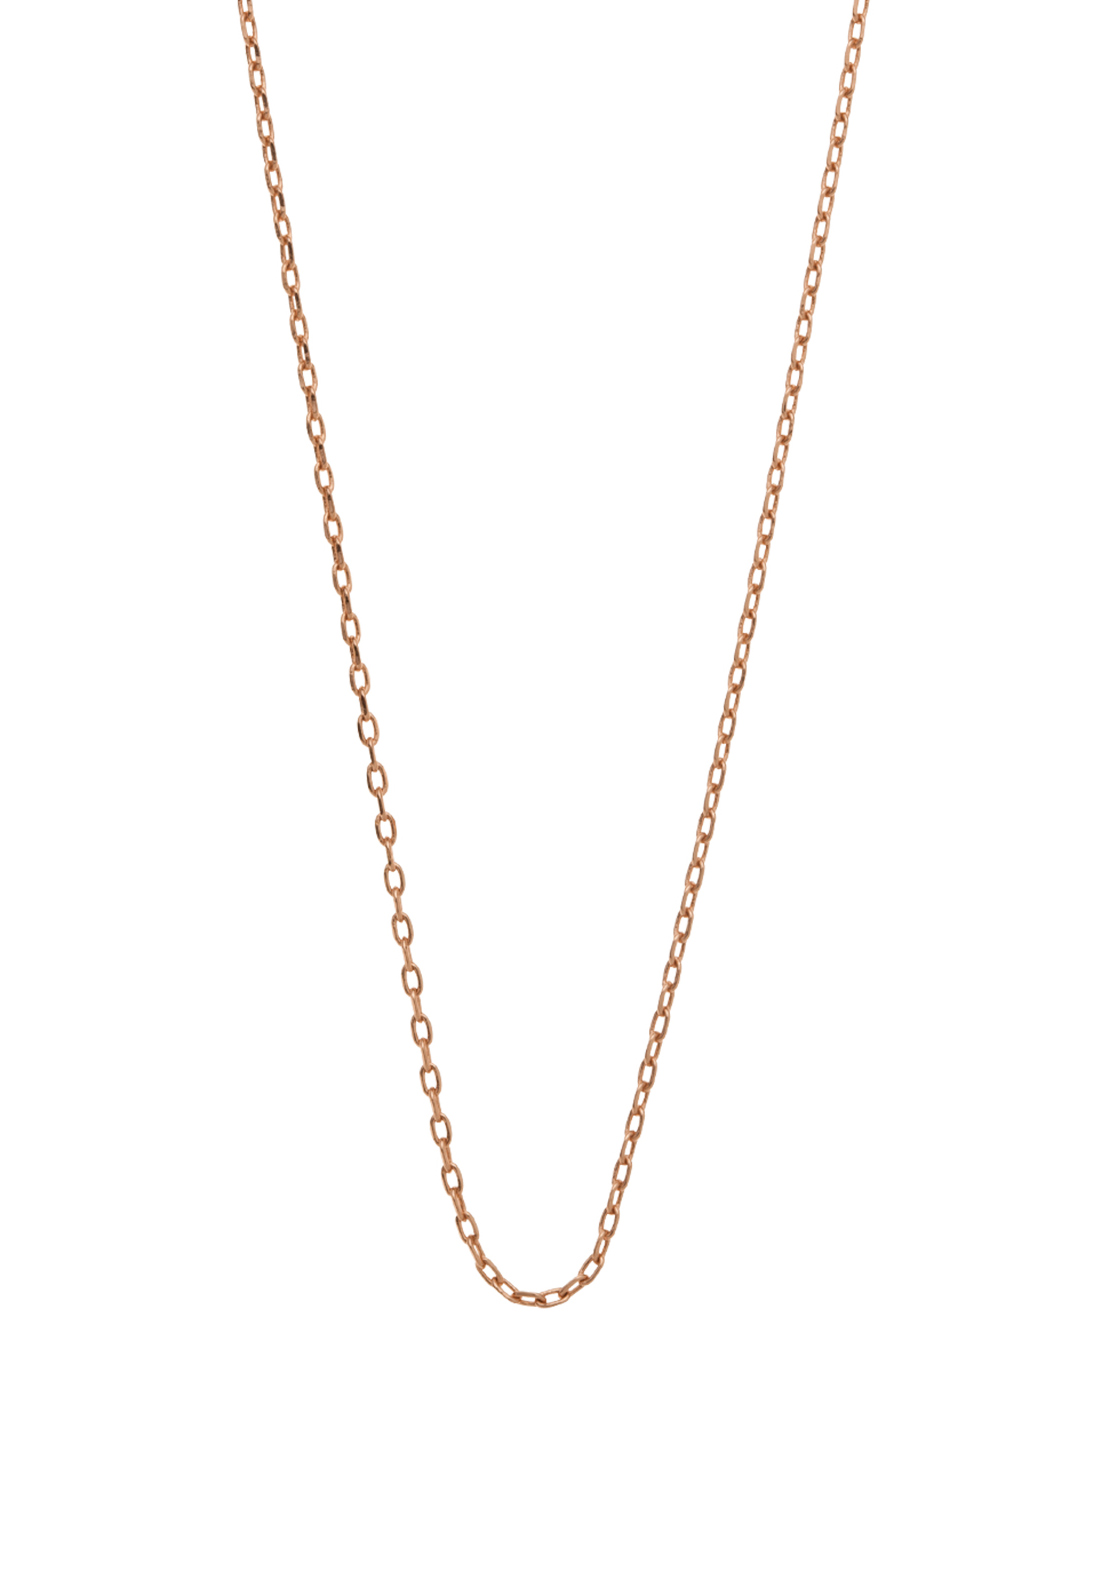 "Kirstin Ash Ball Chain 18-20"", Rose-Gold Plated"